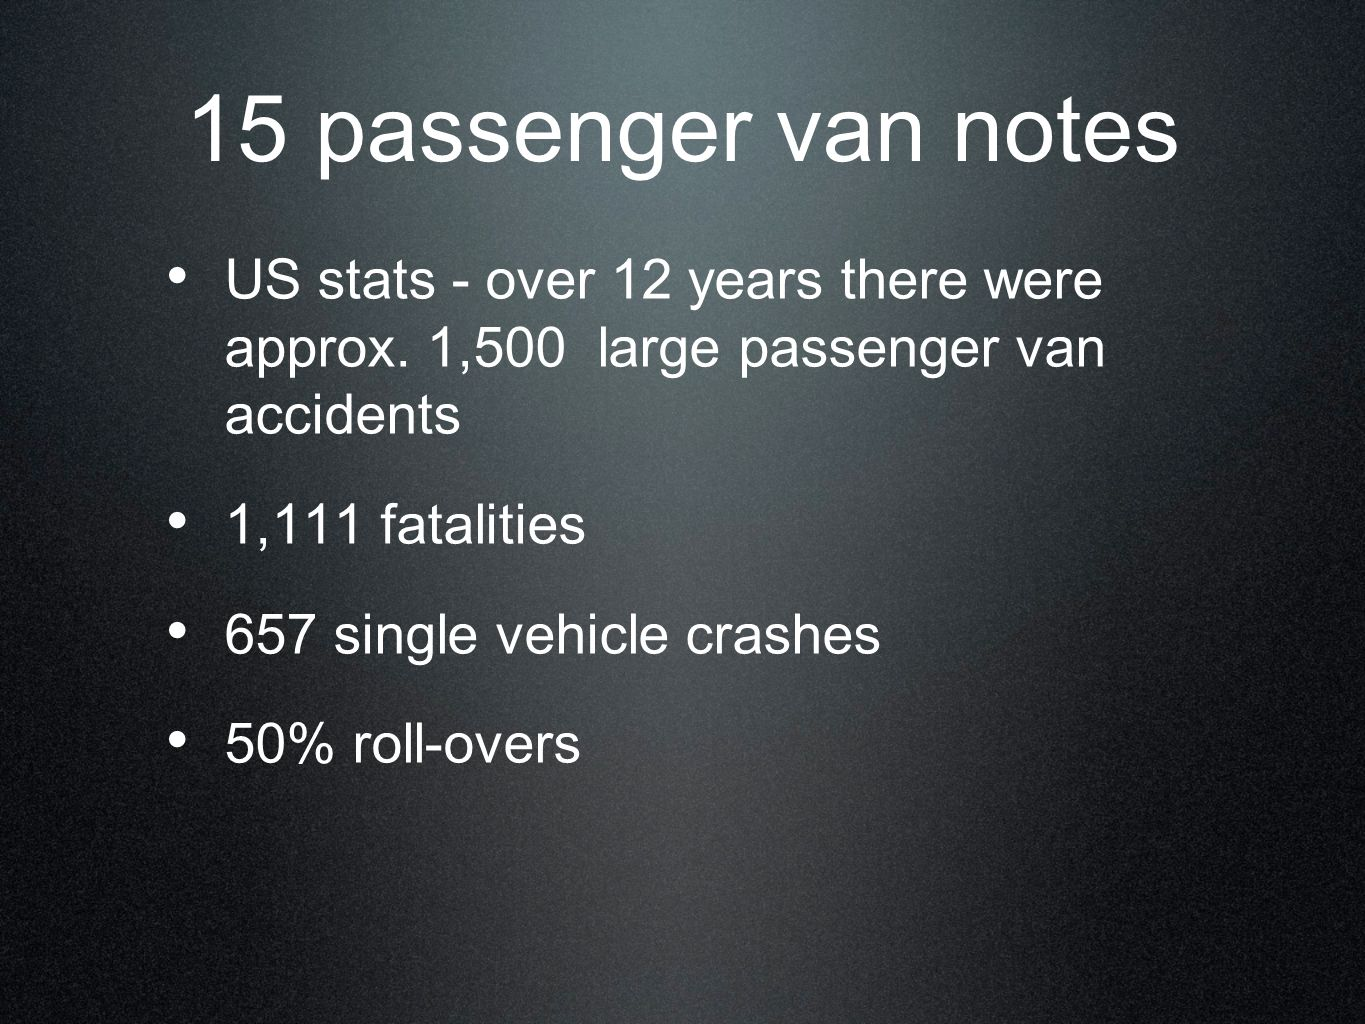 15 passenger van notes US stats - over 12 years there were approx. 1,500 large passenger van accidents.